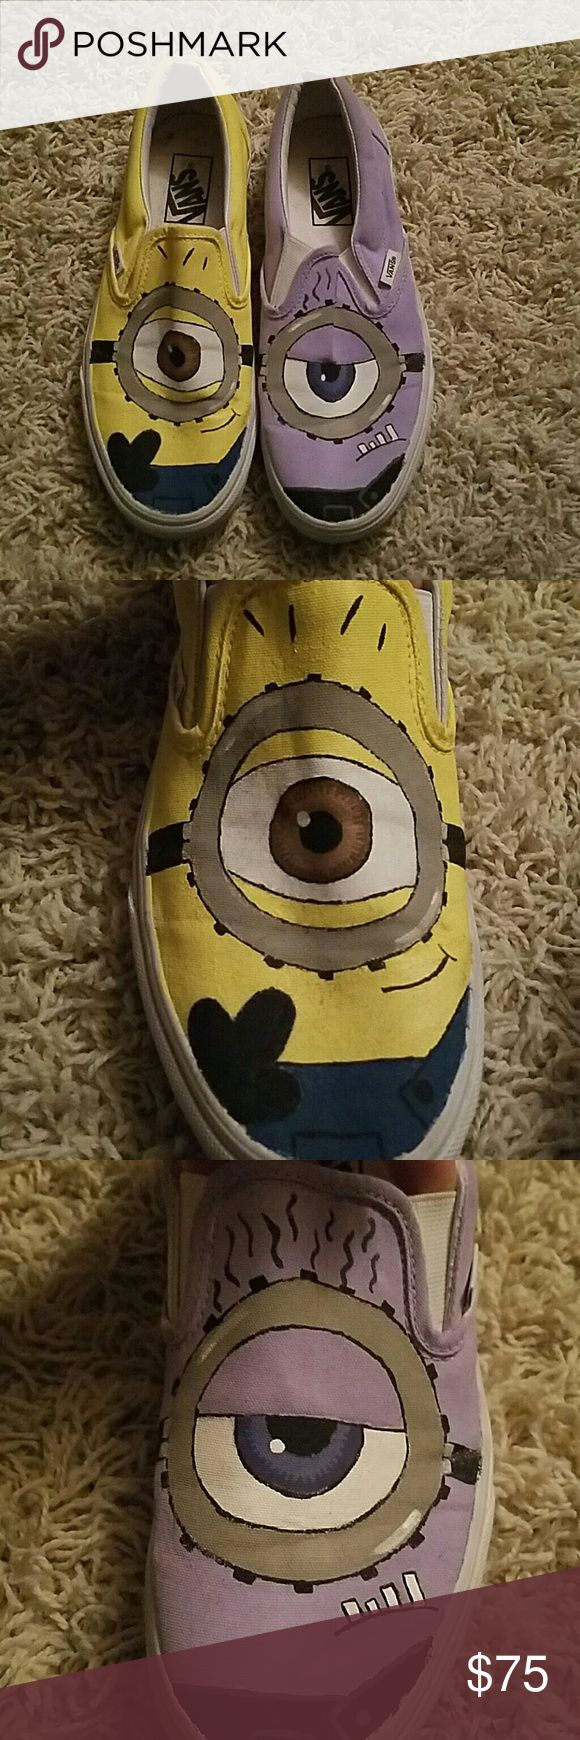 Original Minion hand painted Van shoes Originally white Van's, I decided to hand paint these shoes like the minions one like the original yellow ones and then one like the purple crazy minions from the second movie. They have only been worn twice. Since the new movie is coming out, I thought this would be the perfect time to sell these. Hopefully some minion fan will be able to wear these more and appreciate them more! Vans Shoes Sneakers